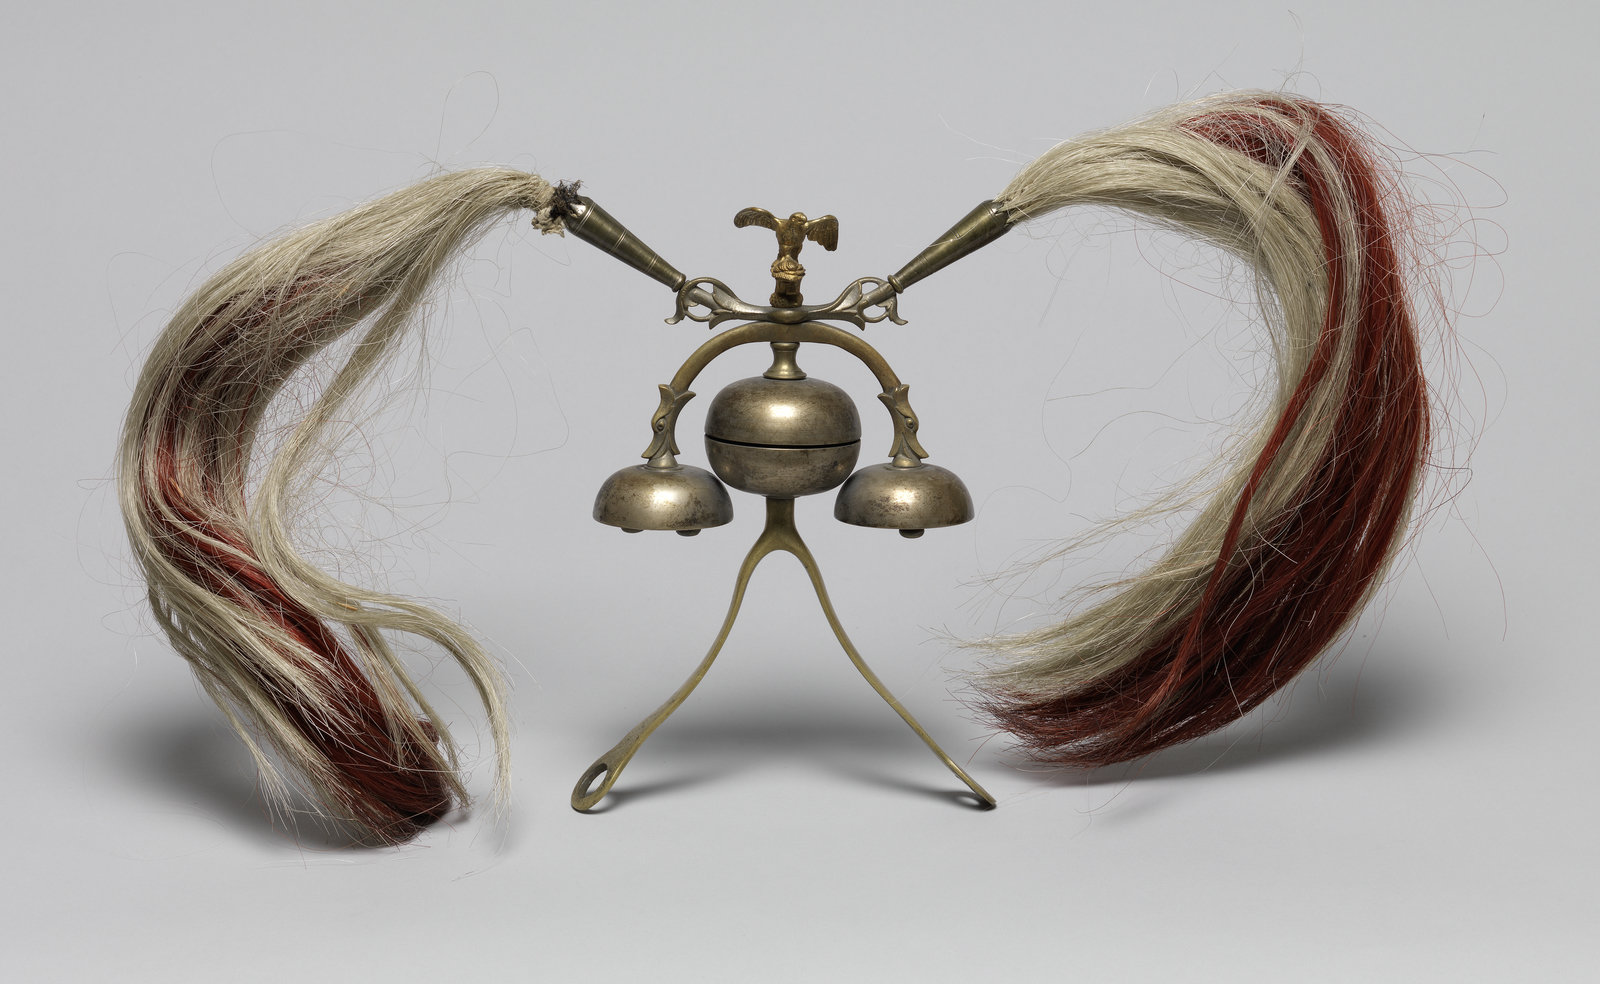 Sleigh bells, 1880/1890, Unknown, [These sleigh bells were mounted on a horse collar for winter sleigh rides in the countryside. The ringing bells warned pedestrians of an approaching sledge gliding silently in the snow. They were also a form or personalisation for their owner, a Franconian country-nobleman. The frame is made of brass, originally silver-plated, and the bells of bell-metal, a hard alloy used for making bells. The decorative feather bushes are made from horsehair coloured in the Franconian red and white.], Germanisches Nationalmuseum , CC BY-NC-SA